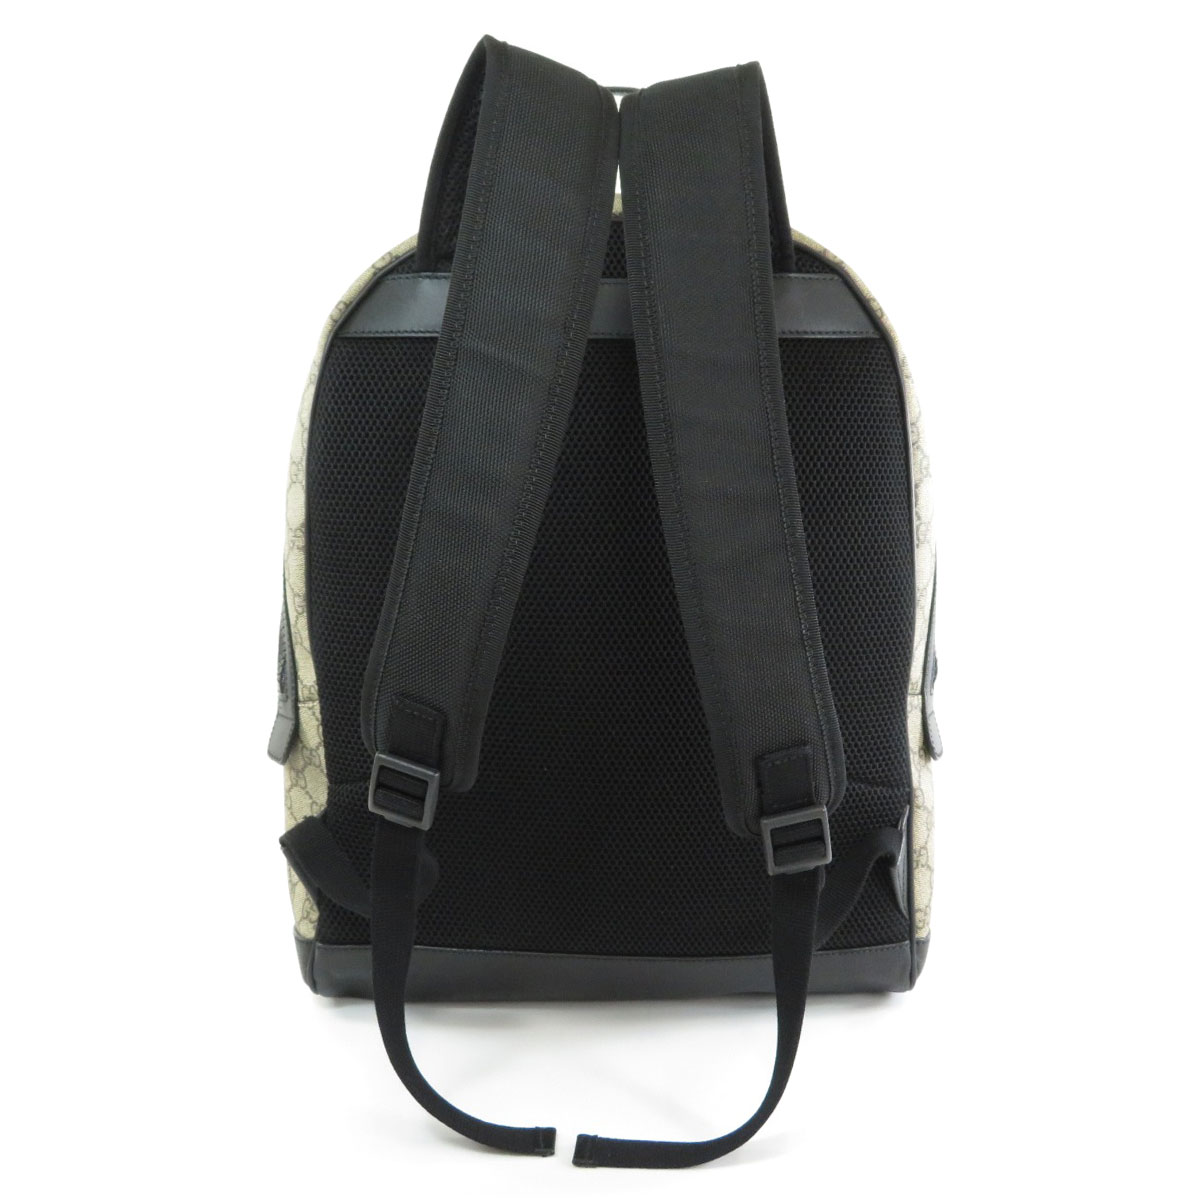 9d9856eb615 GUCCI 406370 Backpack · Daypack GG Supreme PVC